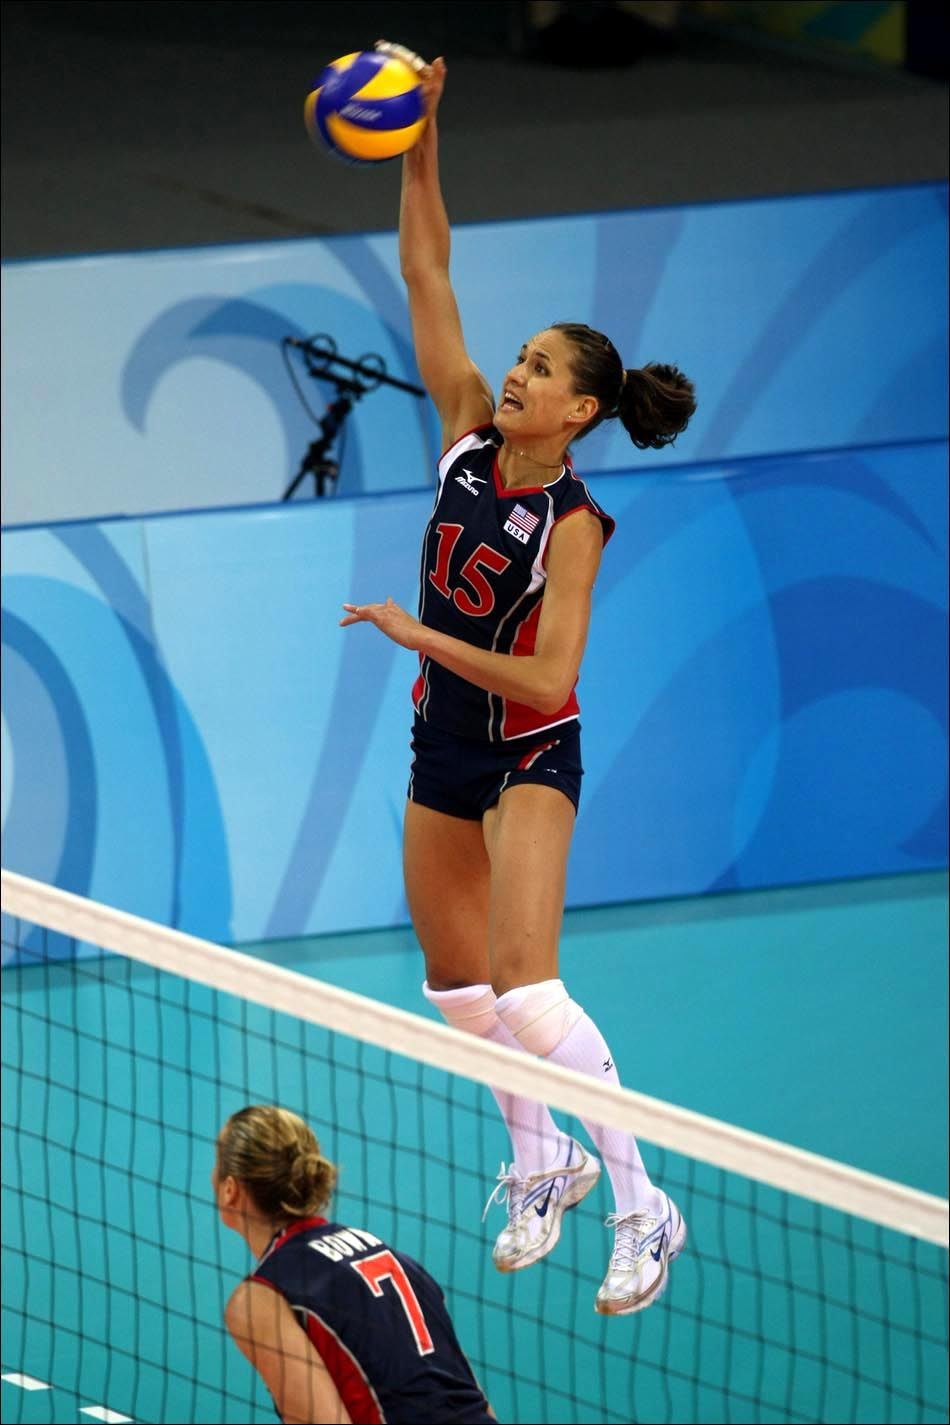 Logan Tom Us Olympic Volleyball Wow With Images Olympic Volleyball Usa Volleyball Indoor Volleyball